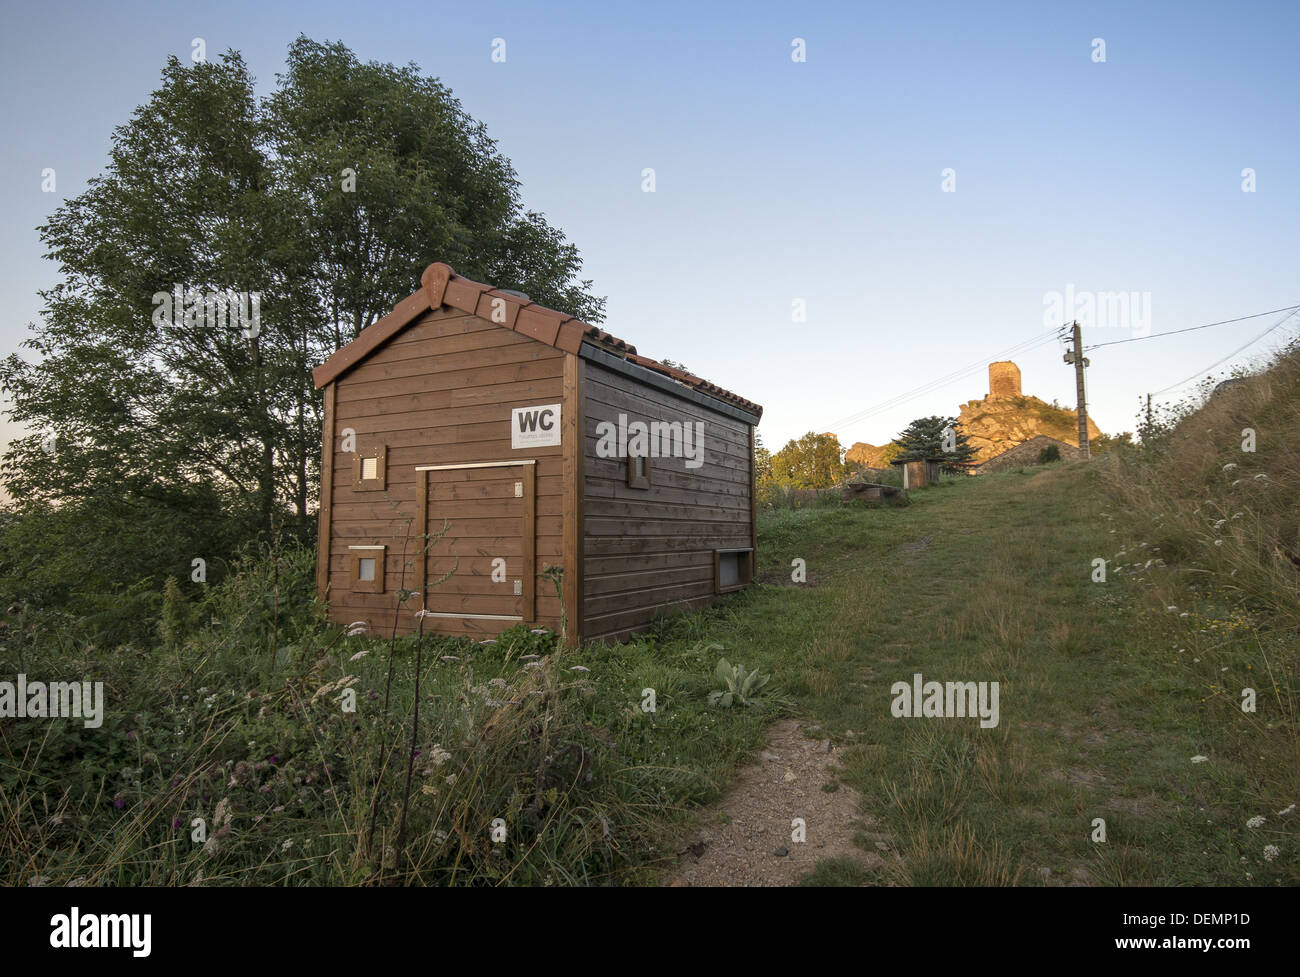 Toilet facilities near the village of Rochegude on the GR65 walking route in France. The Way of St James, Camino de Santiago - Stock Image